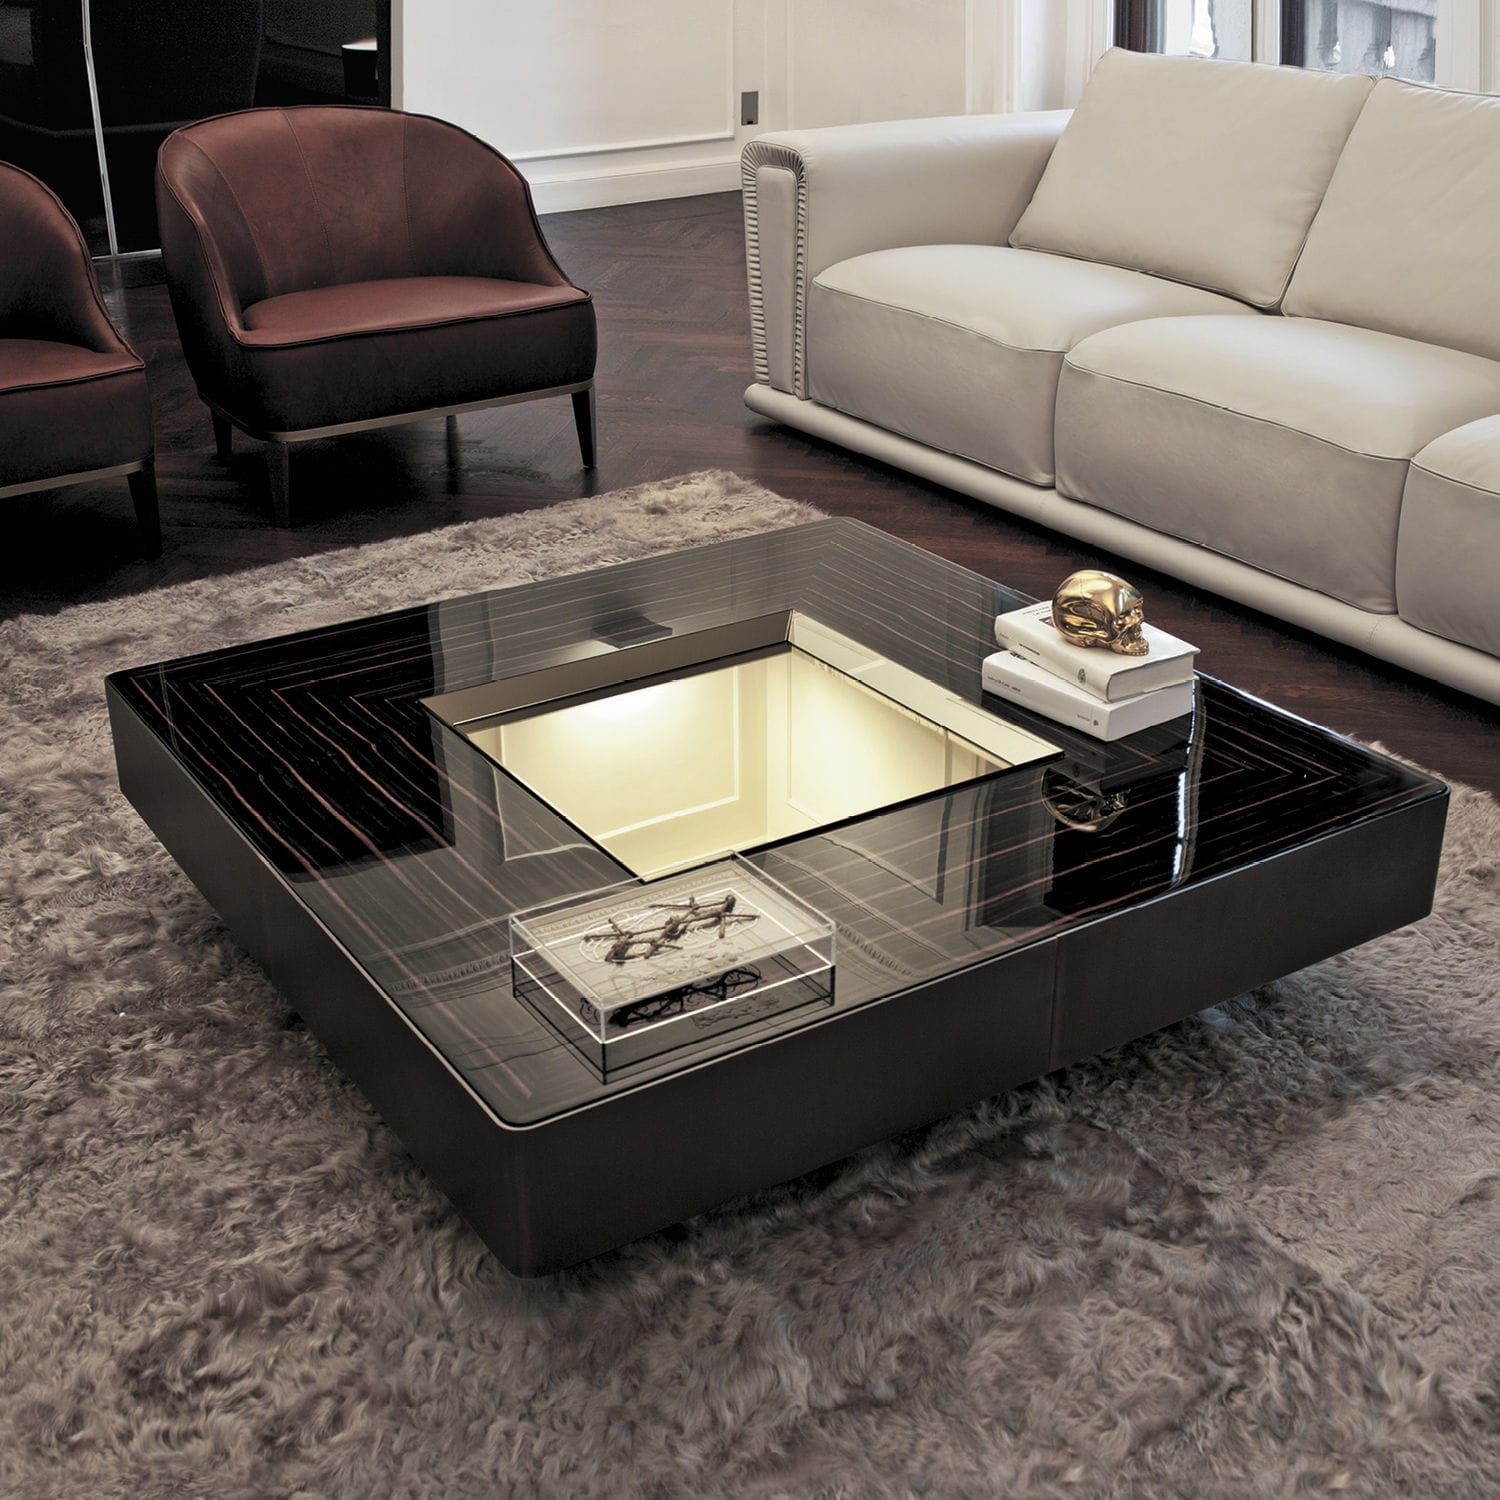 Table Basse Cuir Center Table Living Room Centre Table Living Room Centre Table Design